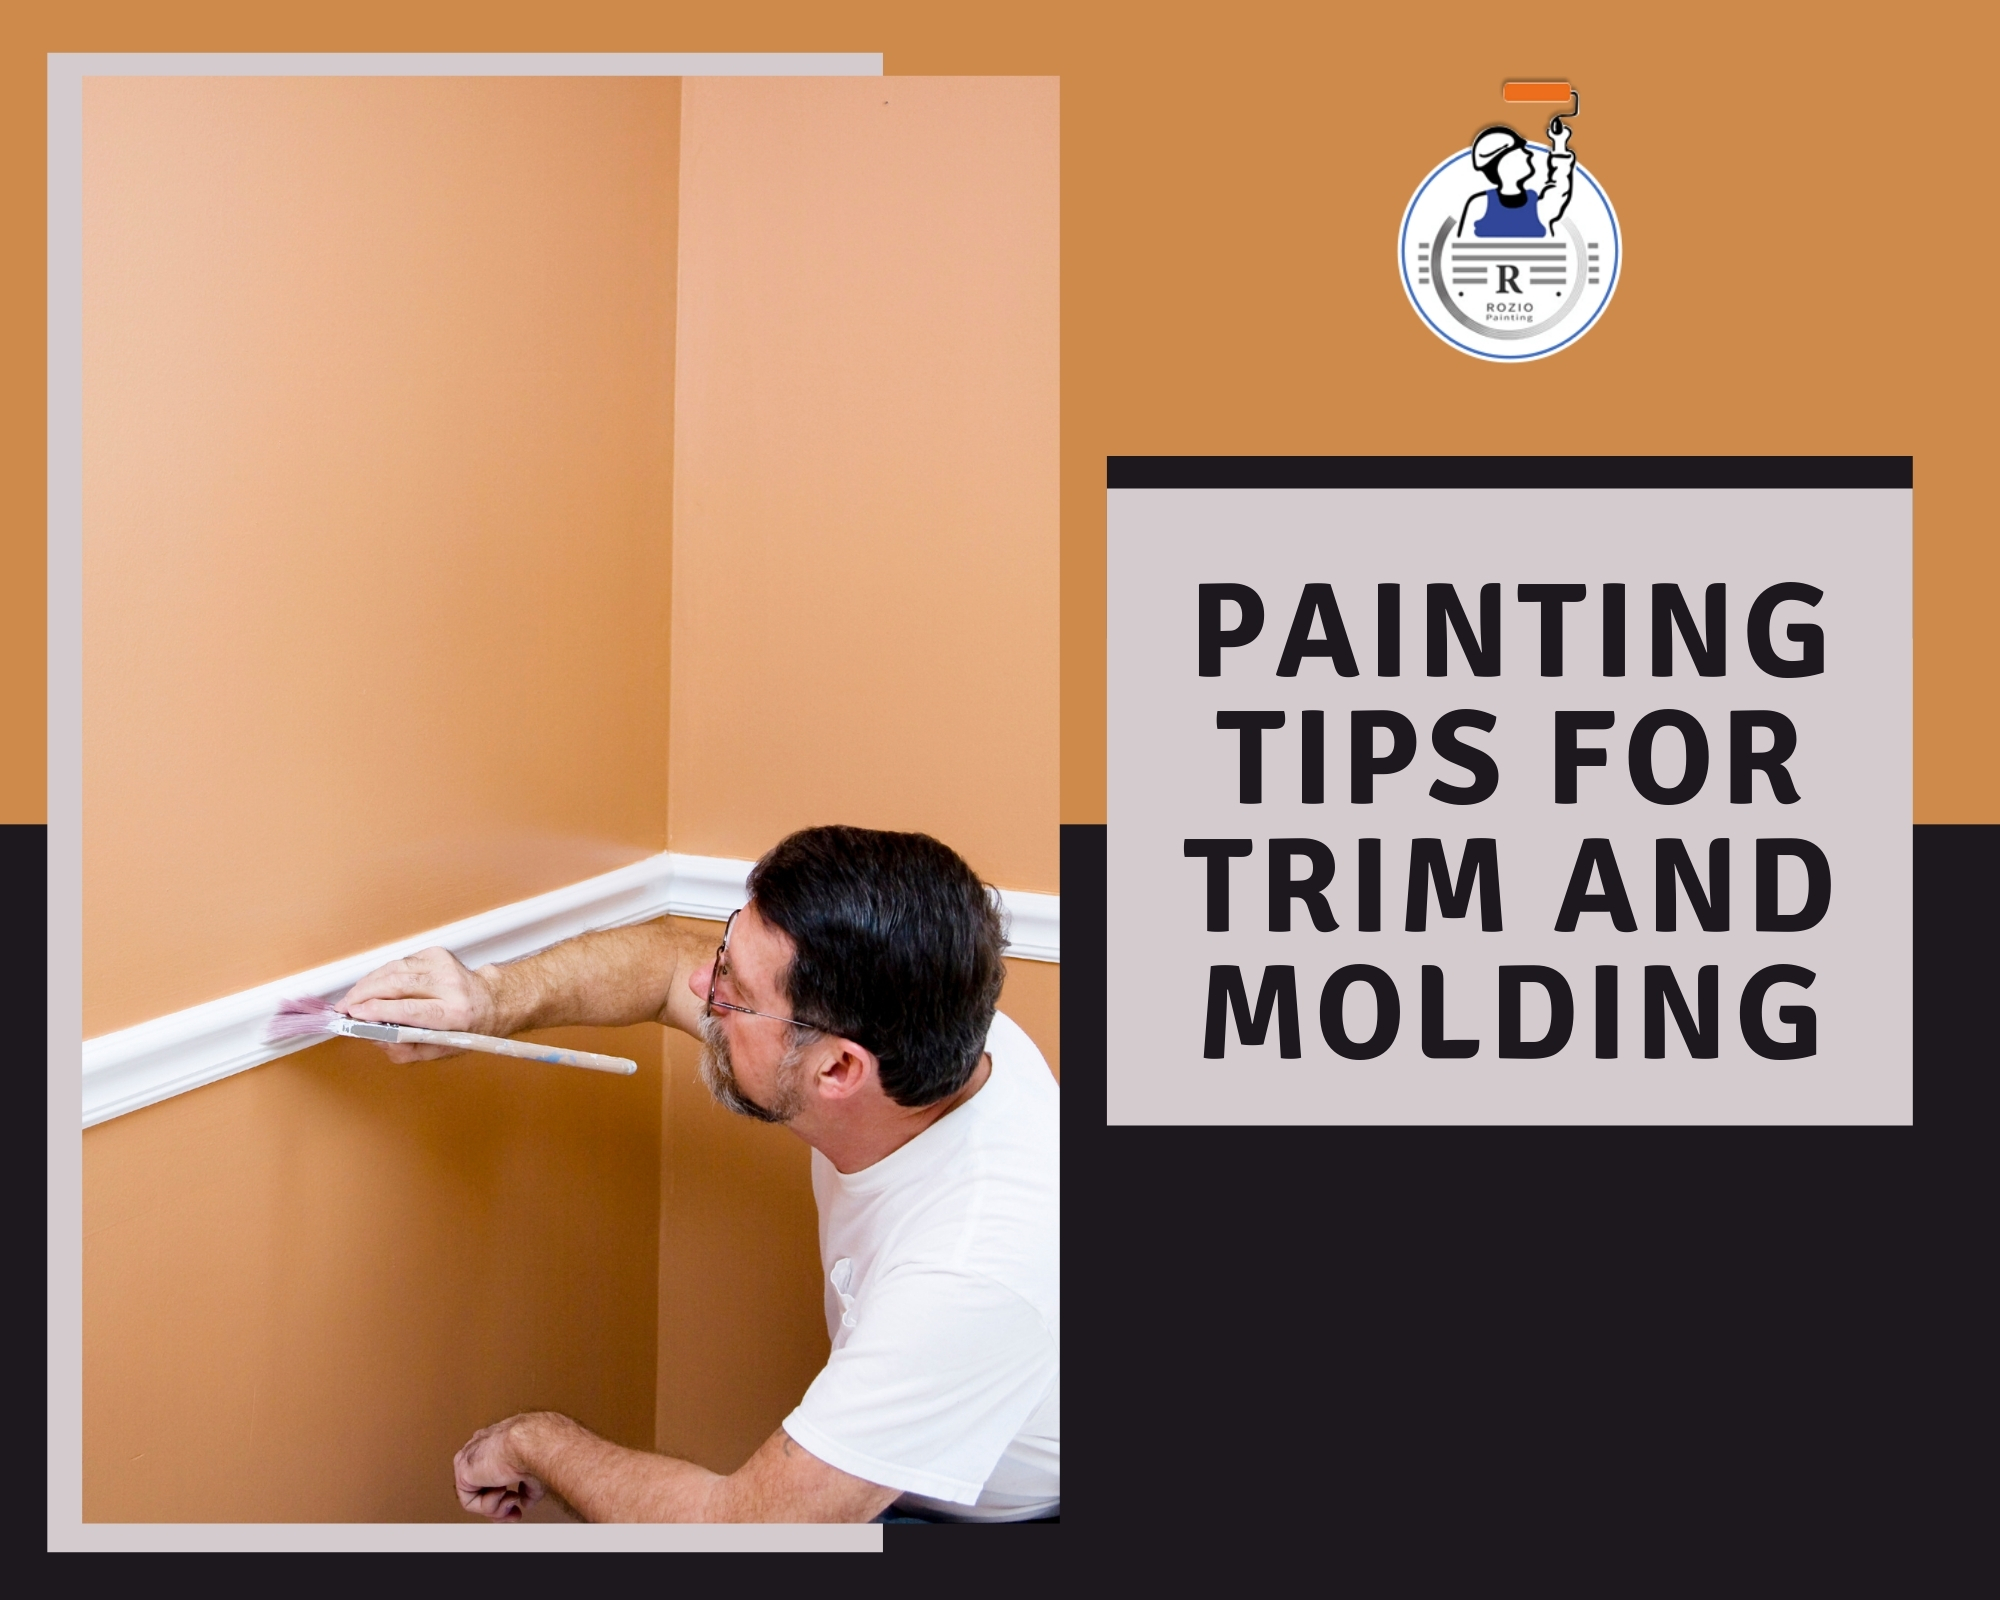 Painting Tips for Trim and Molding